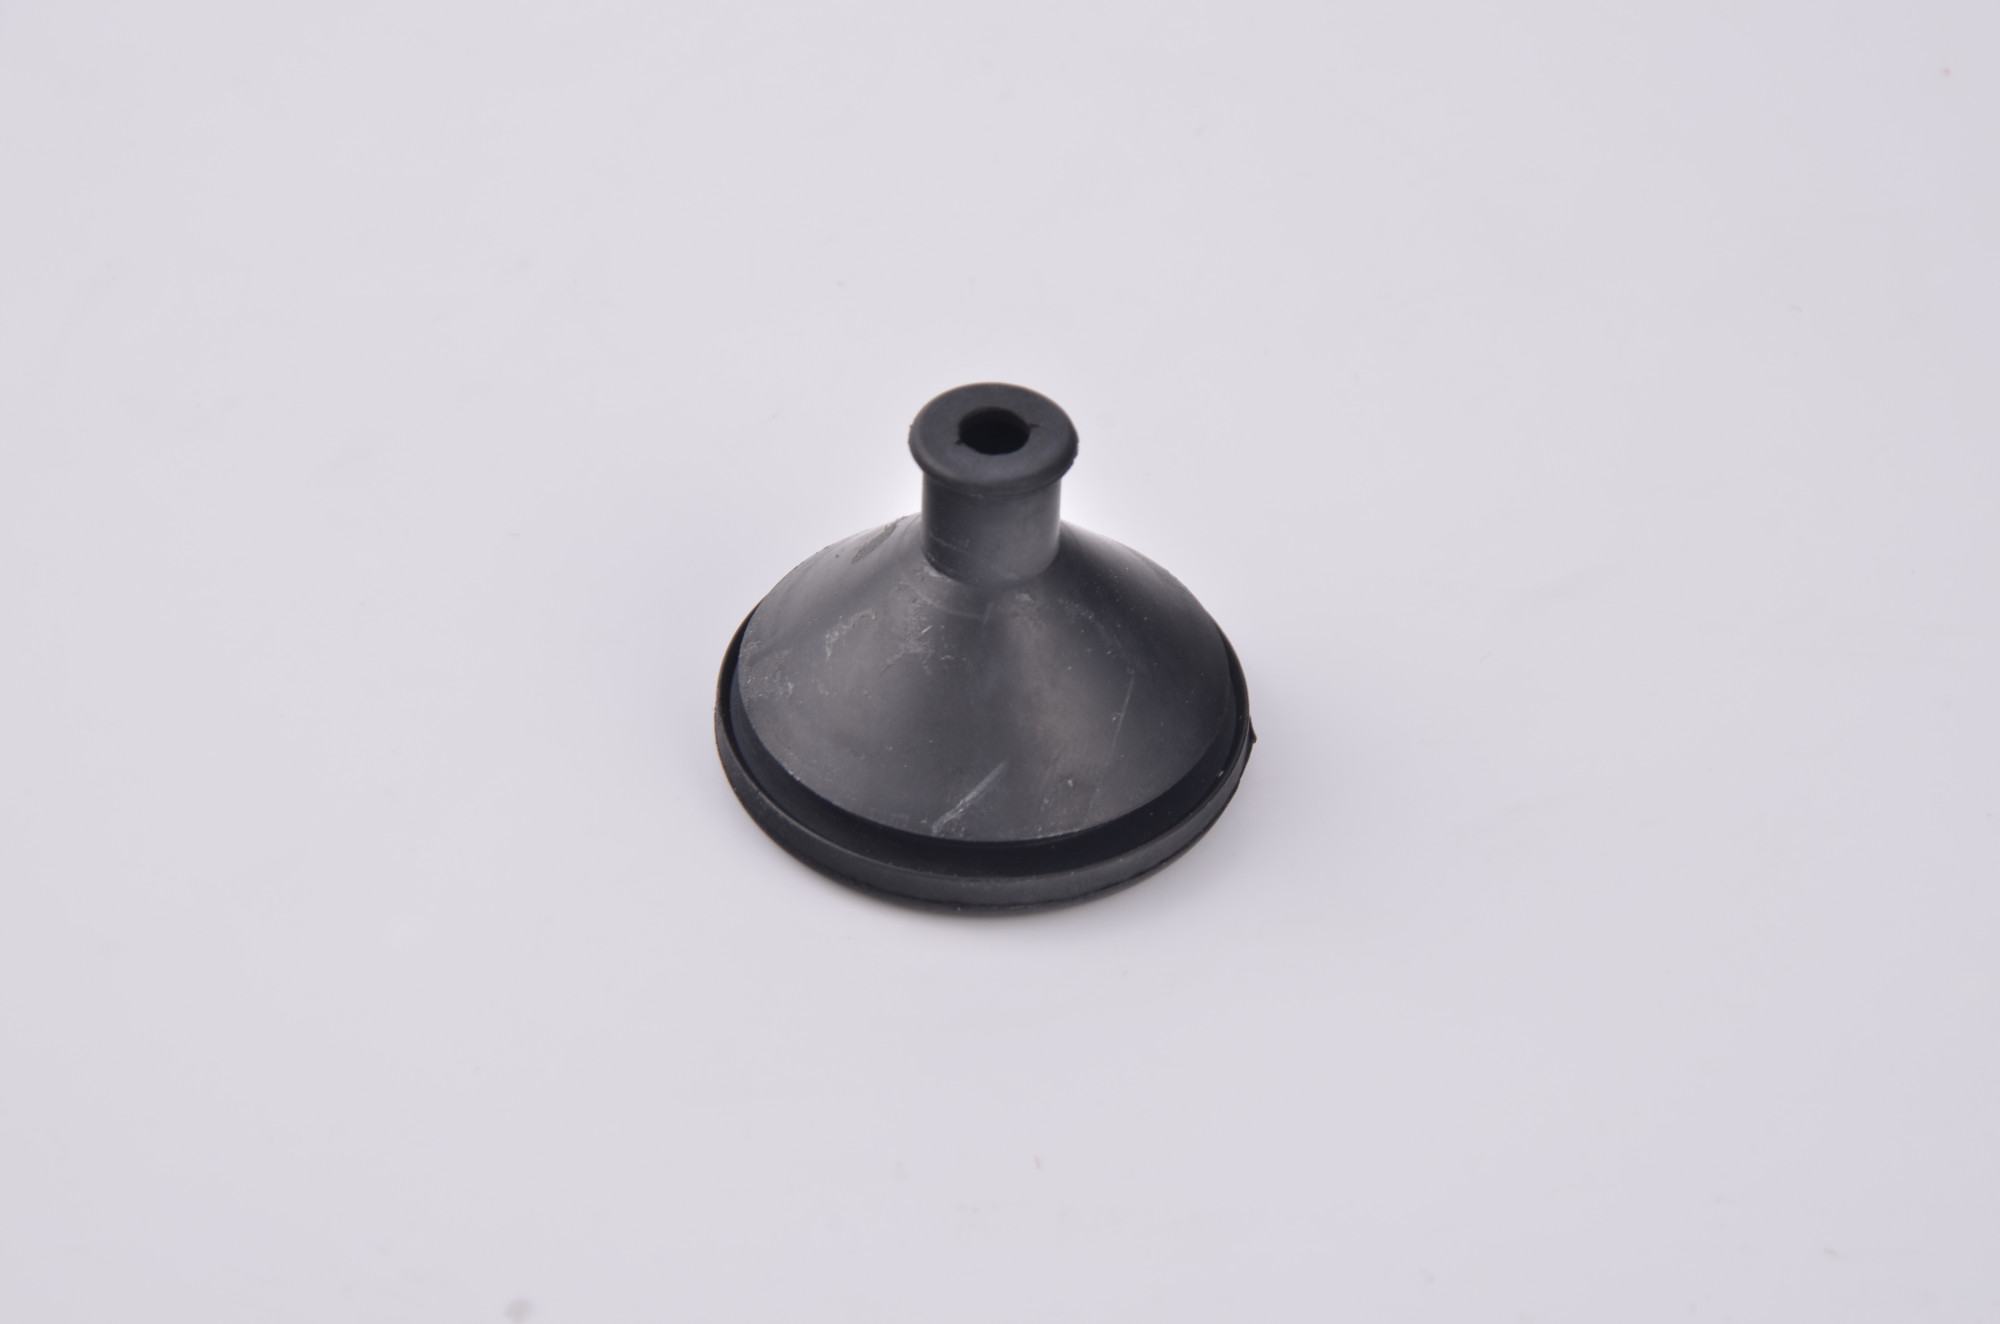 Harness rubber parts Manufacturers, Harness rubber parts Factory, Harness rubber parts